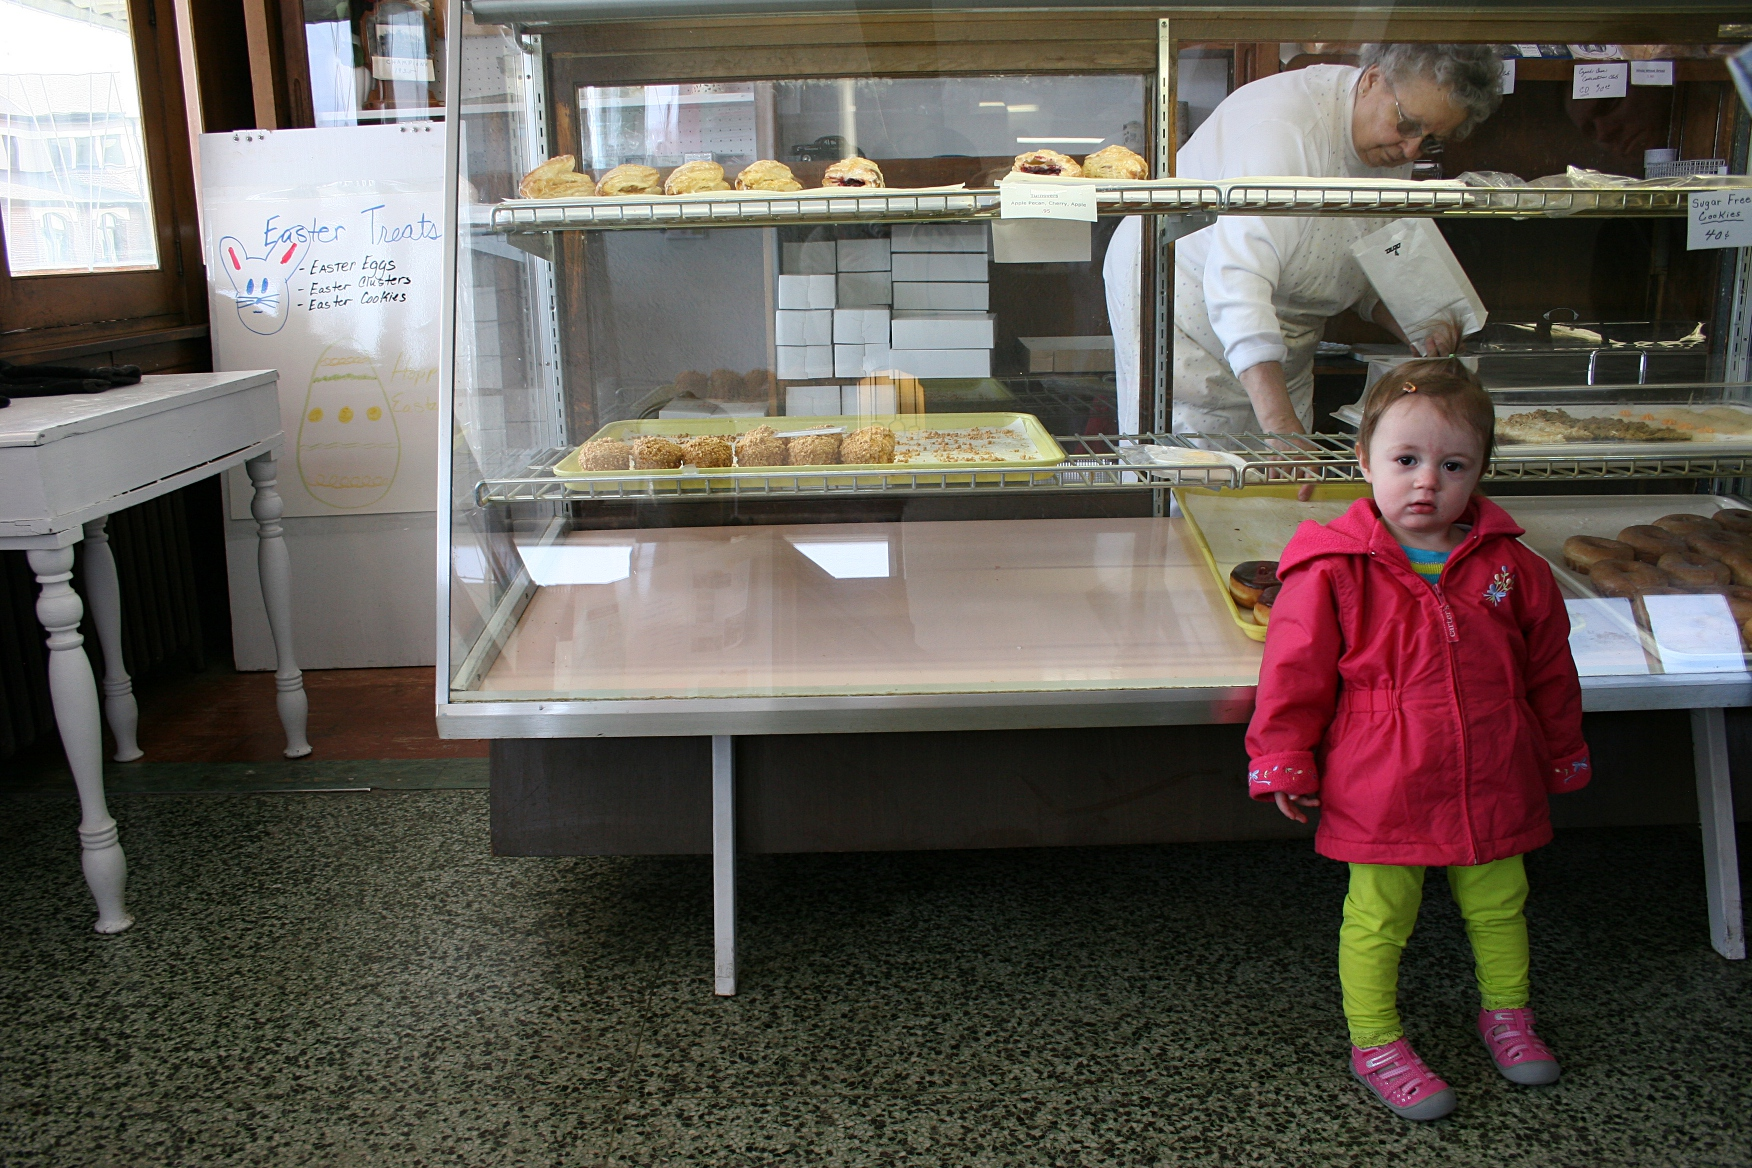 This 18-month-old Montgomery resident stopped in with her dad, grandma and sister for a treat Saturday morning.